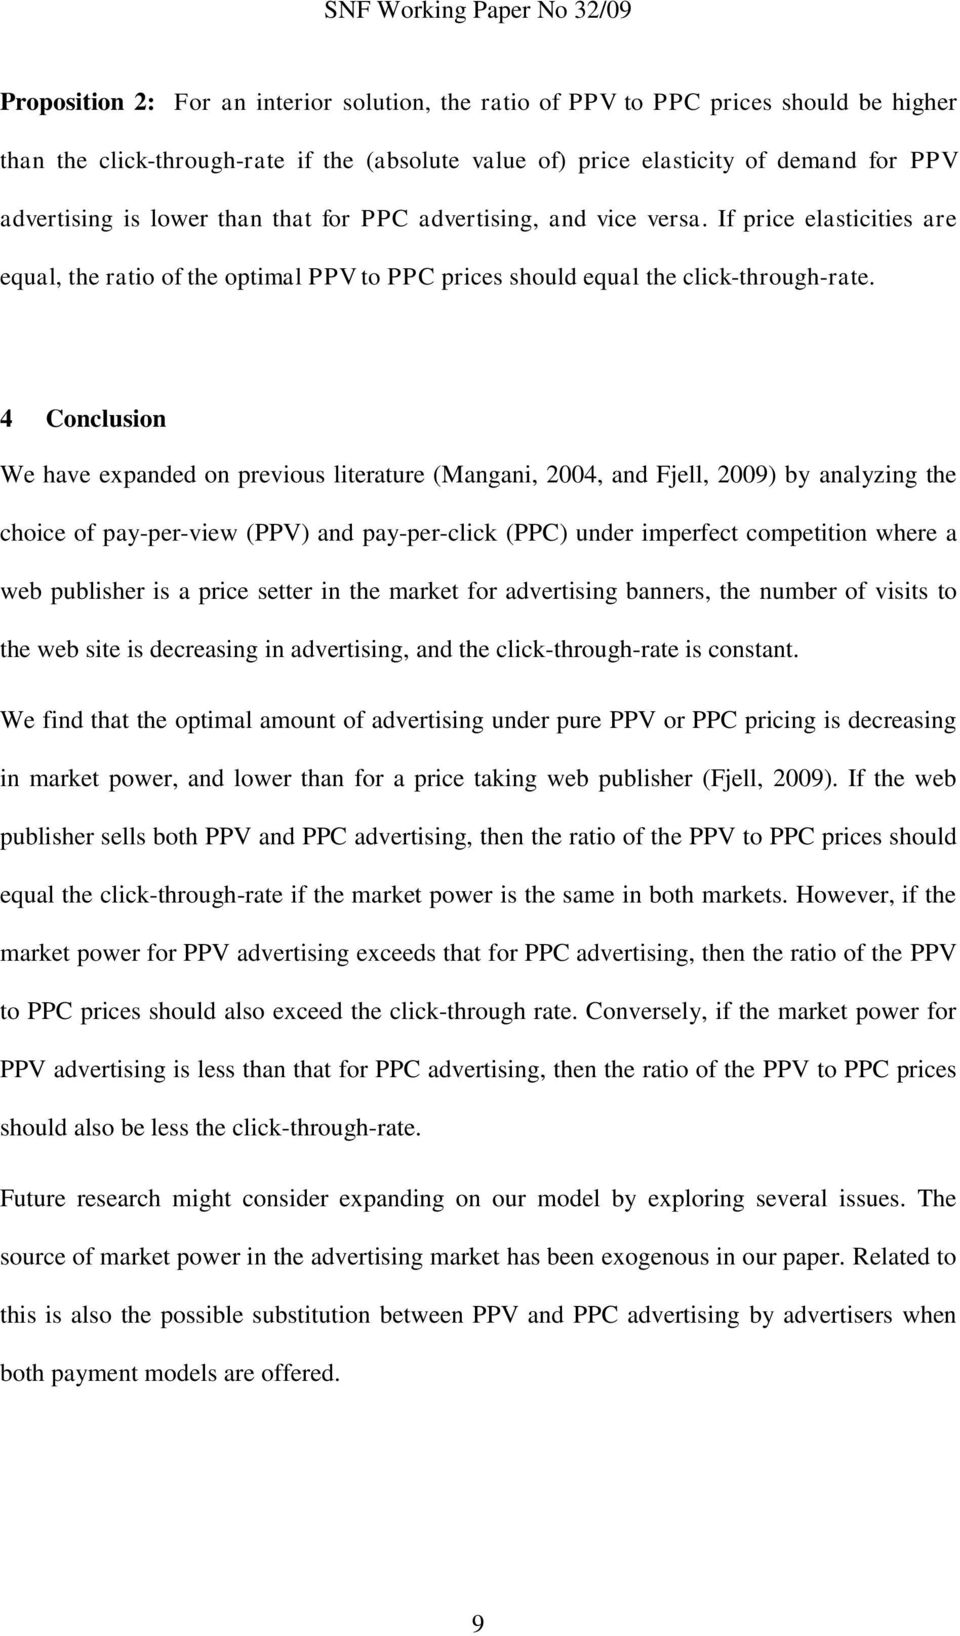 4 Conclusion We have expanded on previous literature (Mangani, 004, and Fjell, 009) by analyzing the choice of pay-per-view (PPV) and pay-per-click (PPC) under imperfect competition where a web